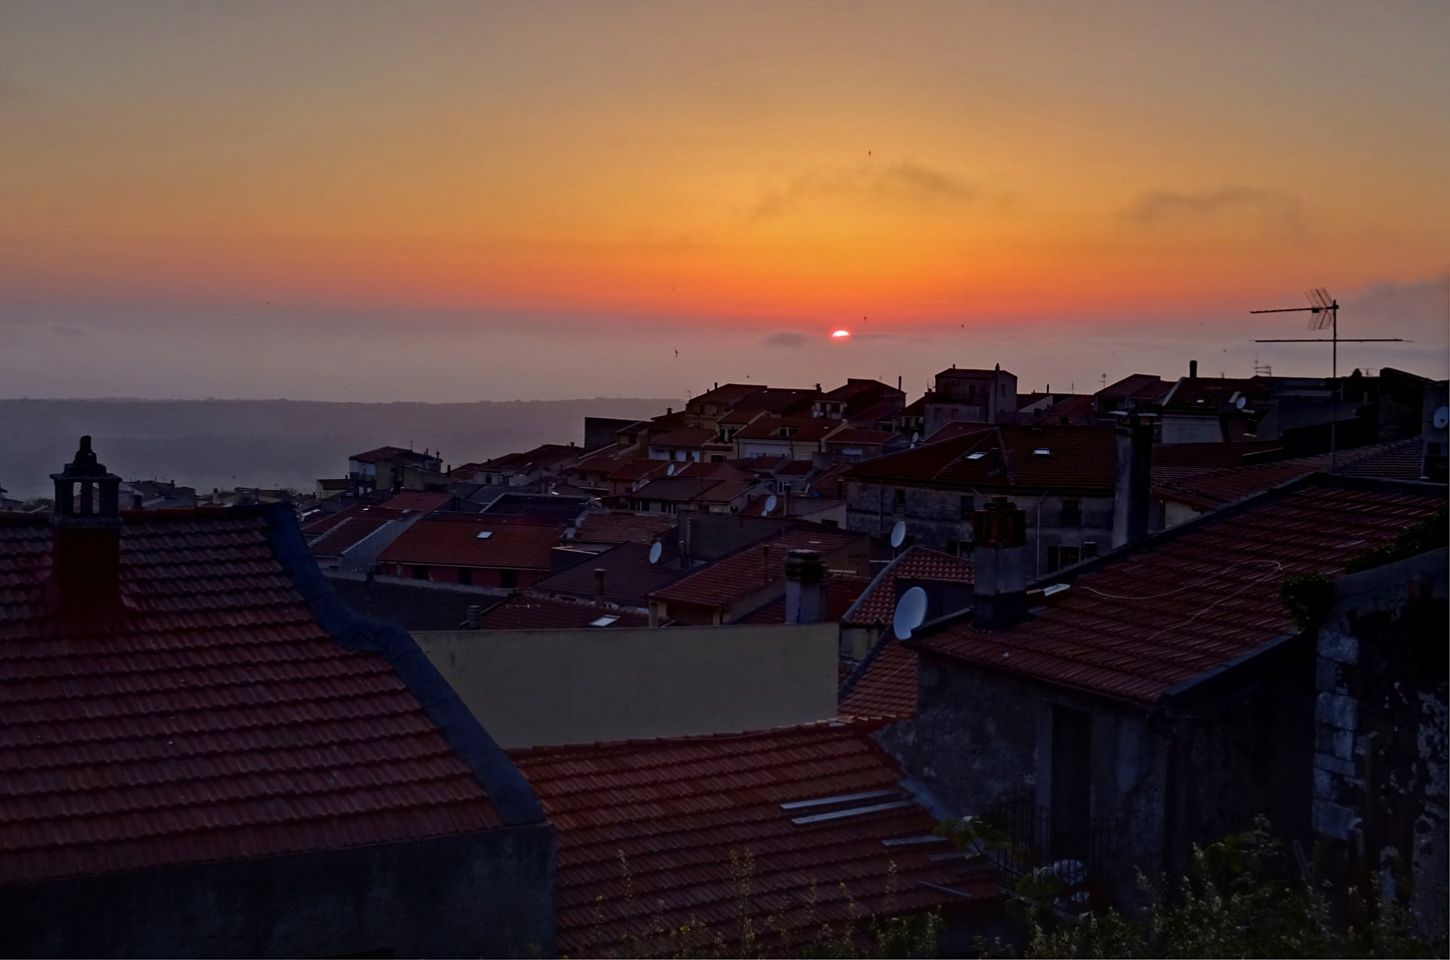 Osilo, the roofs at sunset.